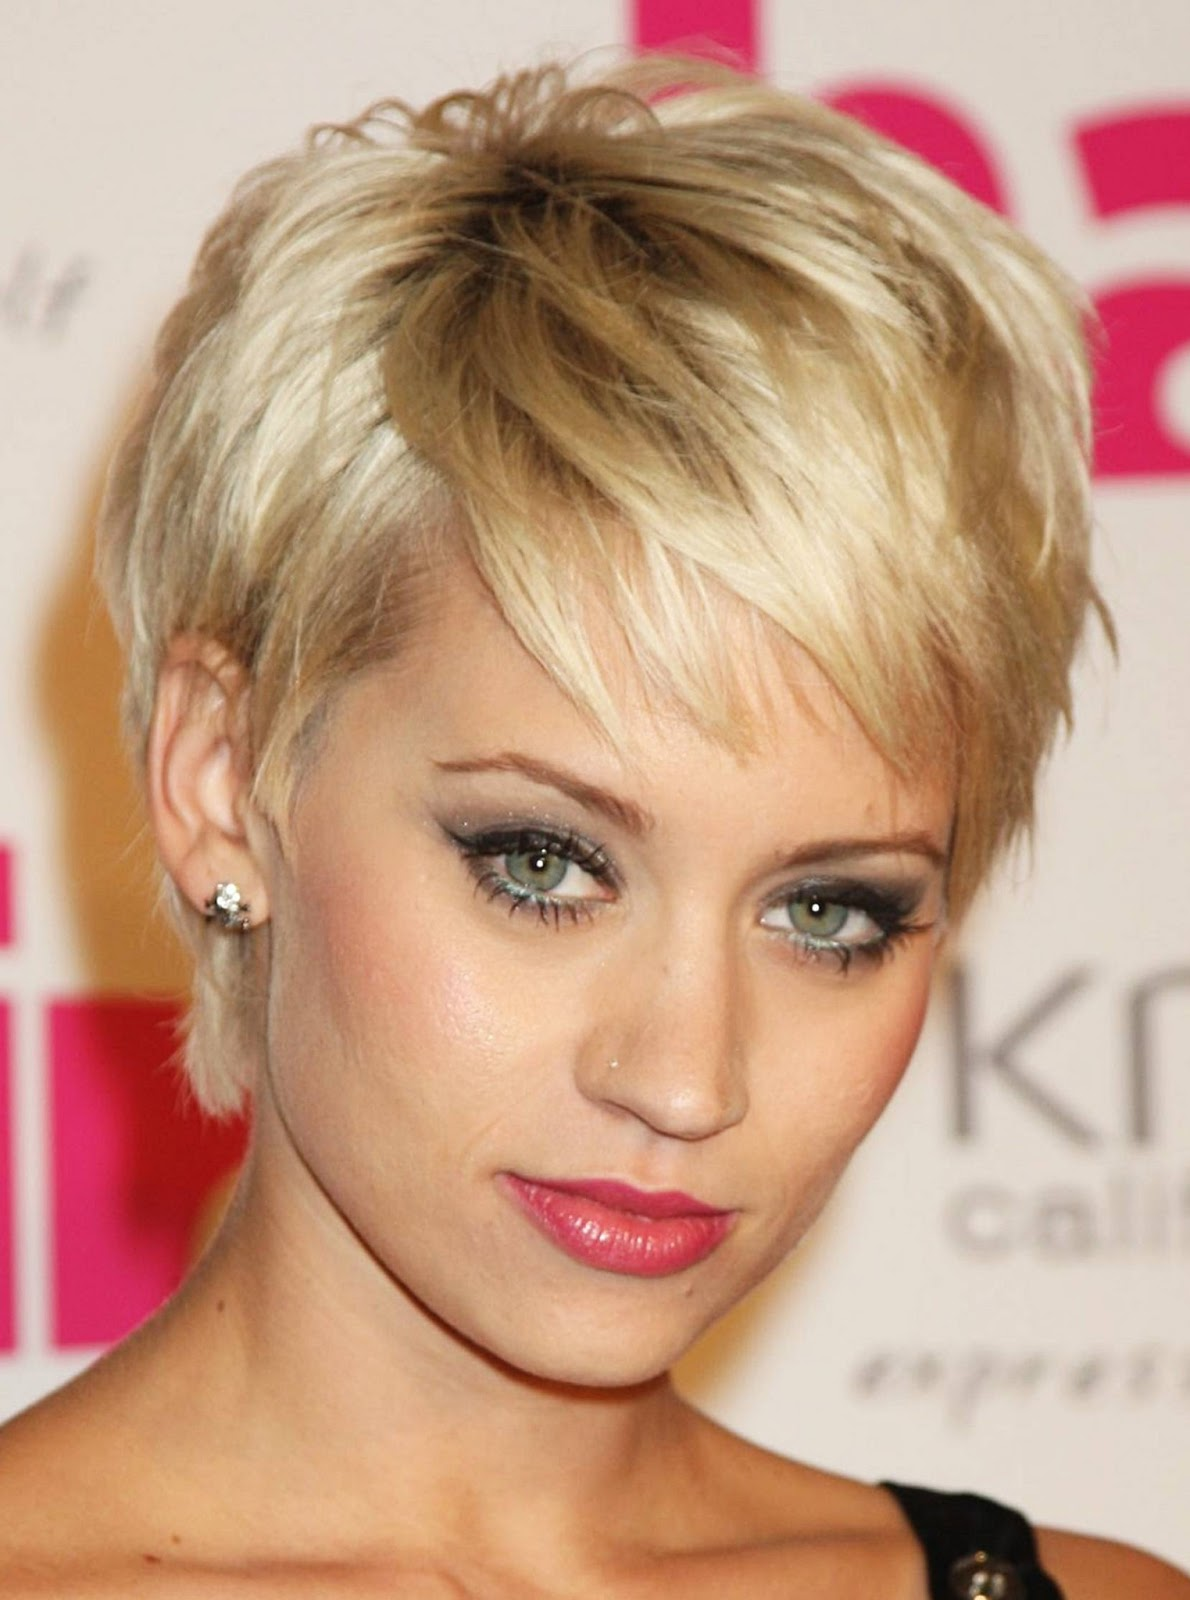 women trendy hairstyles with bangs 2013 hairstyles and